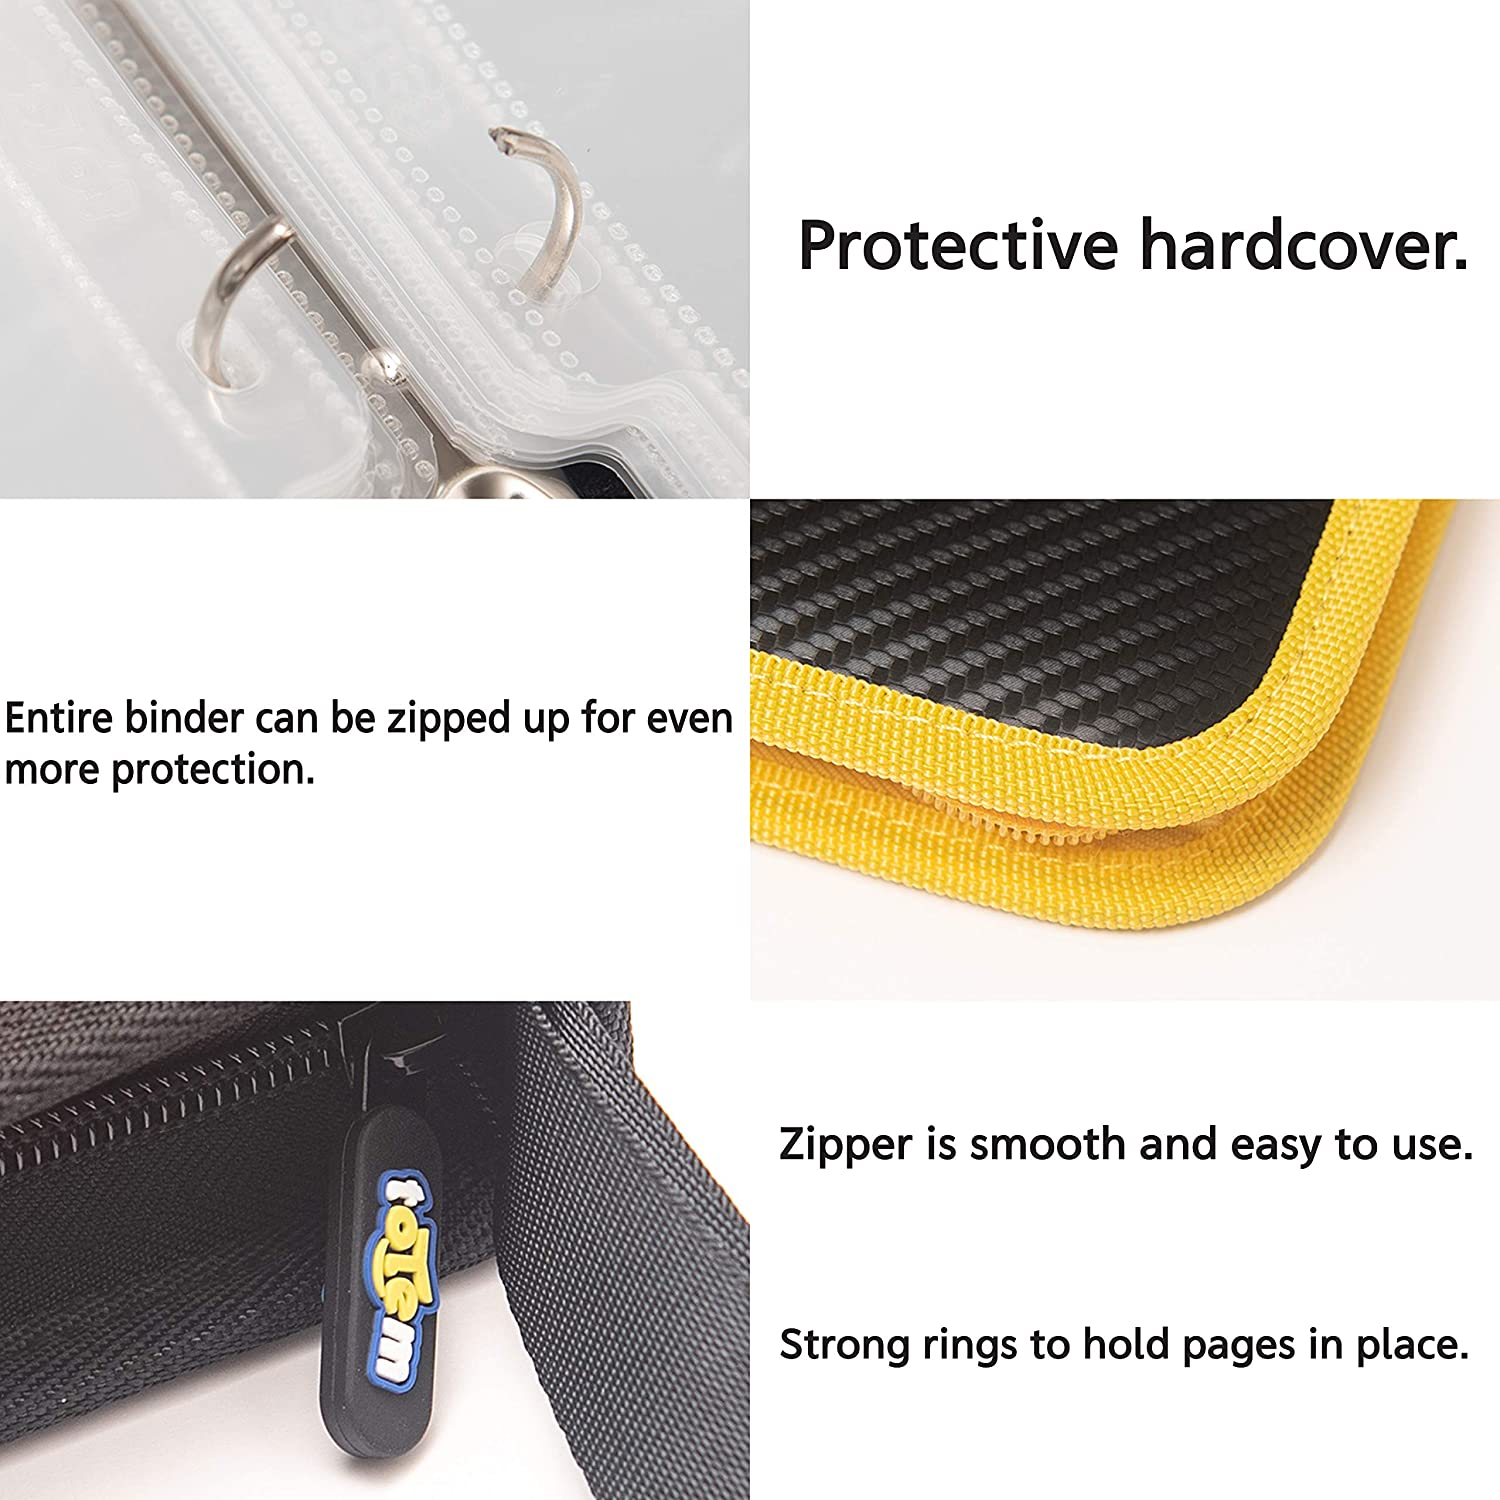 Yu-Gi-Oh 40 9-Pocket Side-Loading Pages and Magic The Gathering Cards Fits Pokemon Totem World 3-Ring Zipper Binder with Yellow Zipper